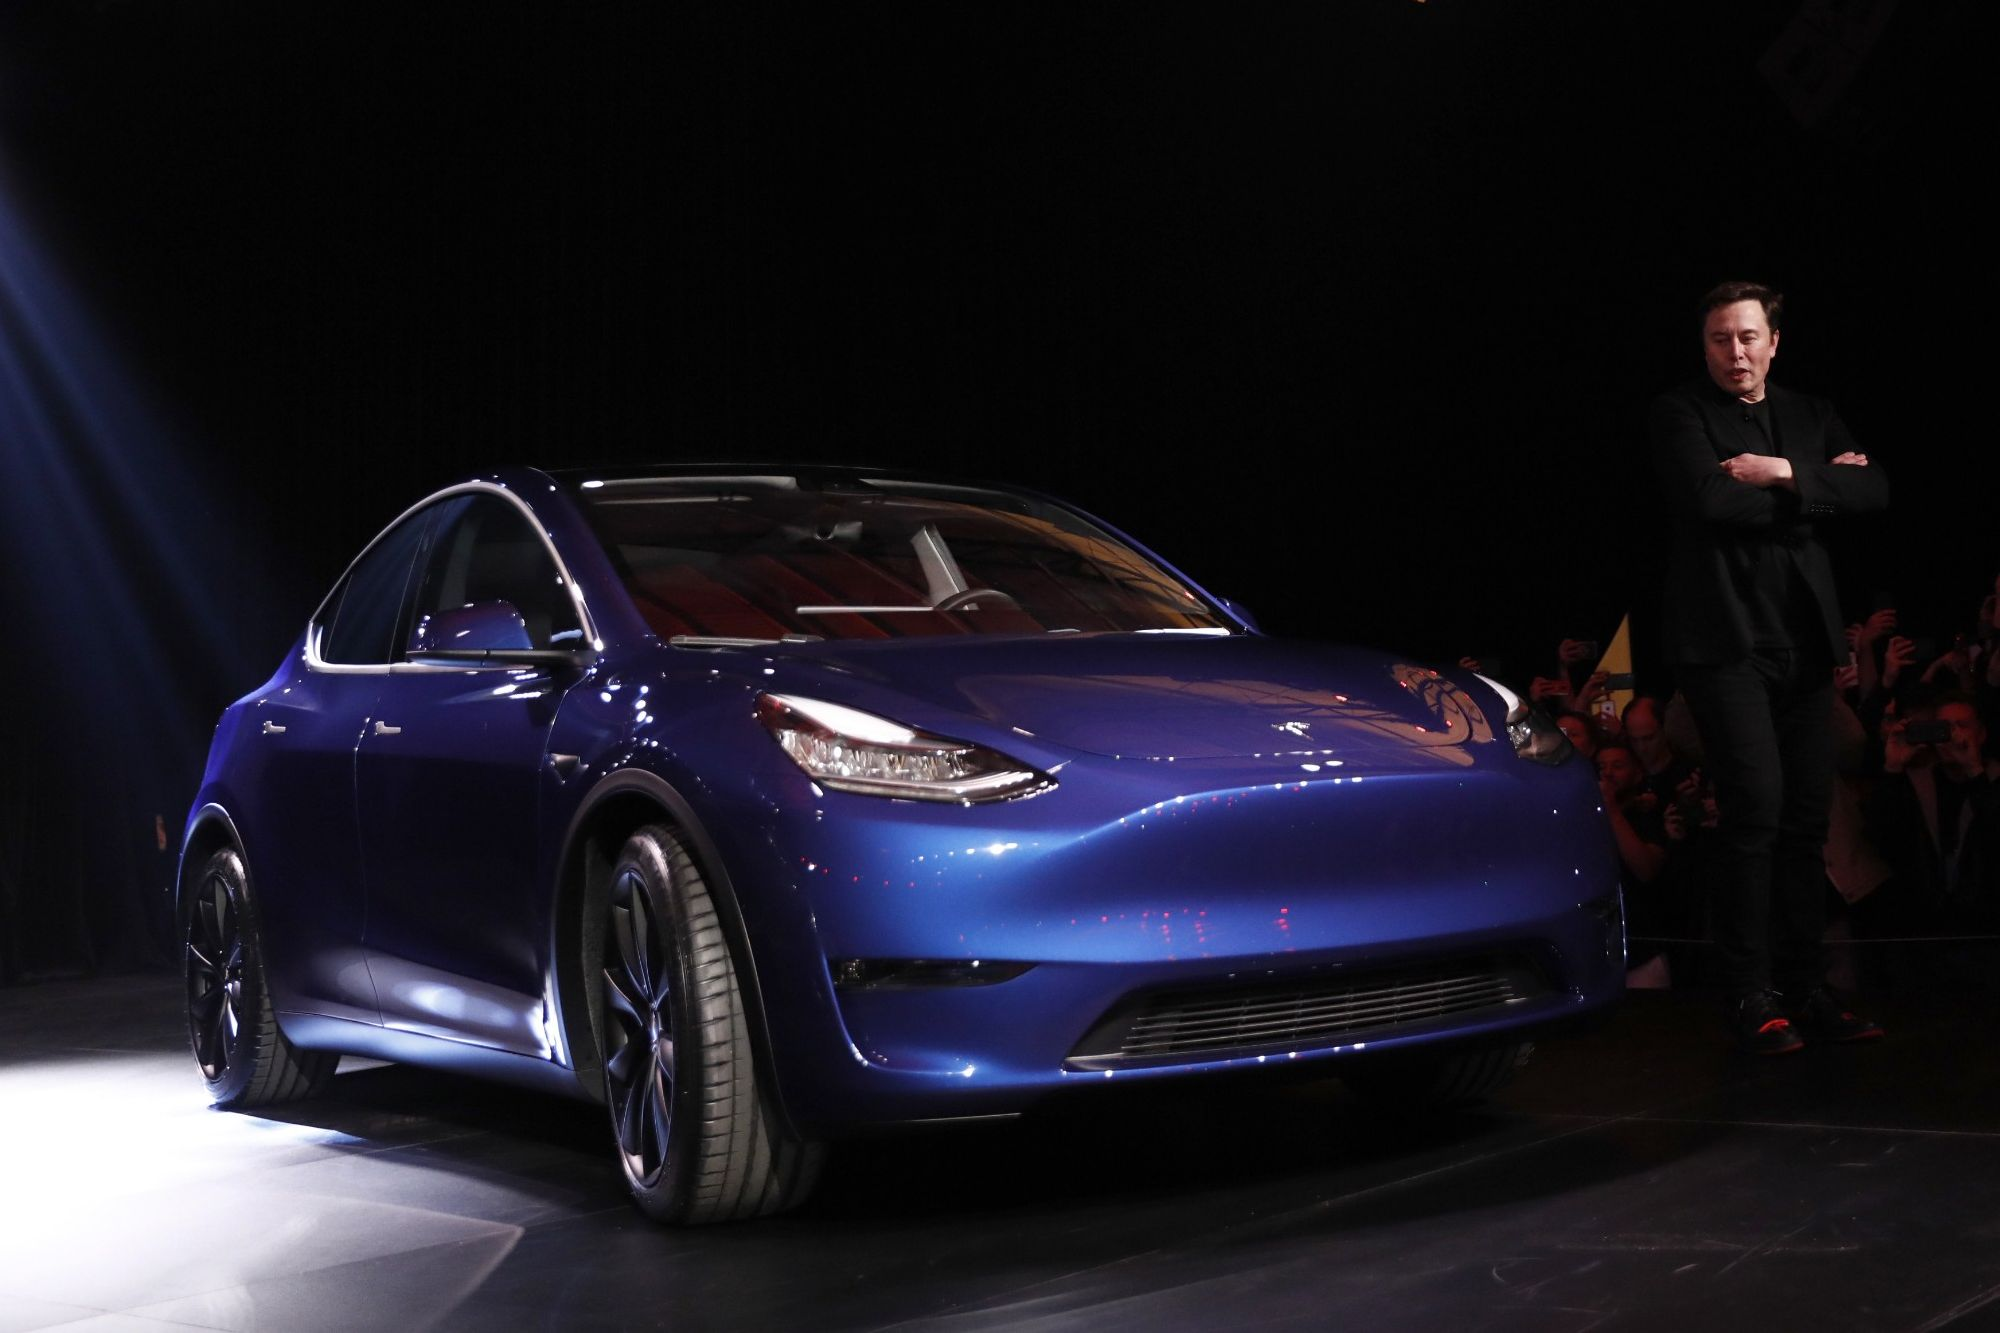 The New Tesla Model Y Gets Chilly Reception and Drives Company Shares Down